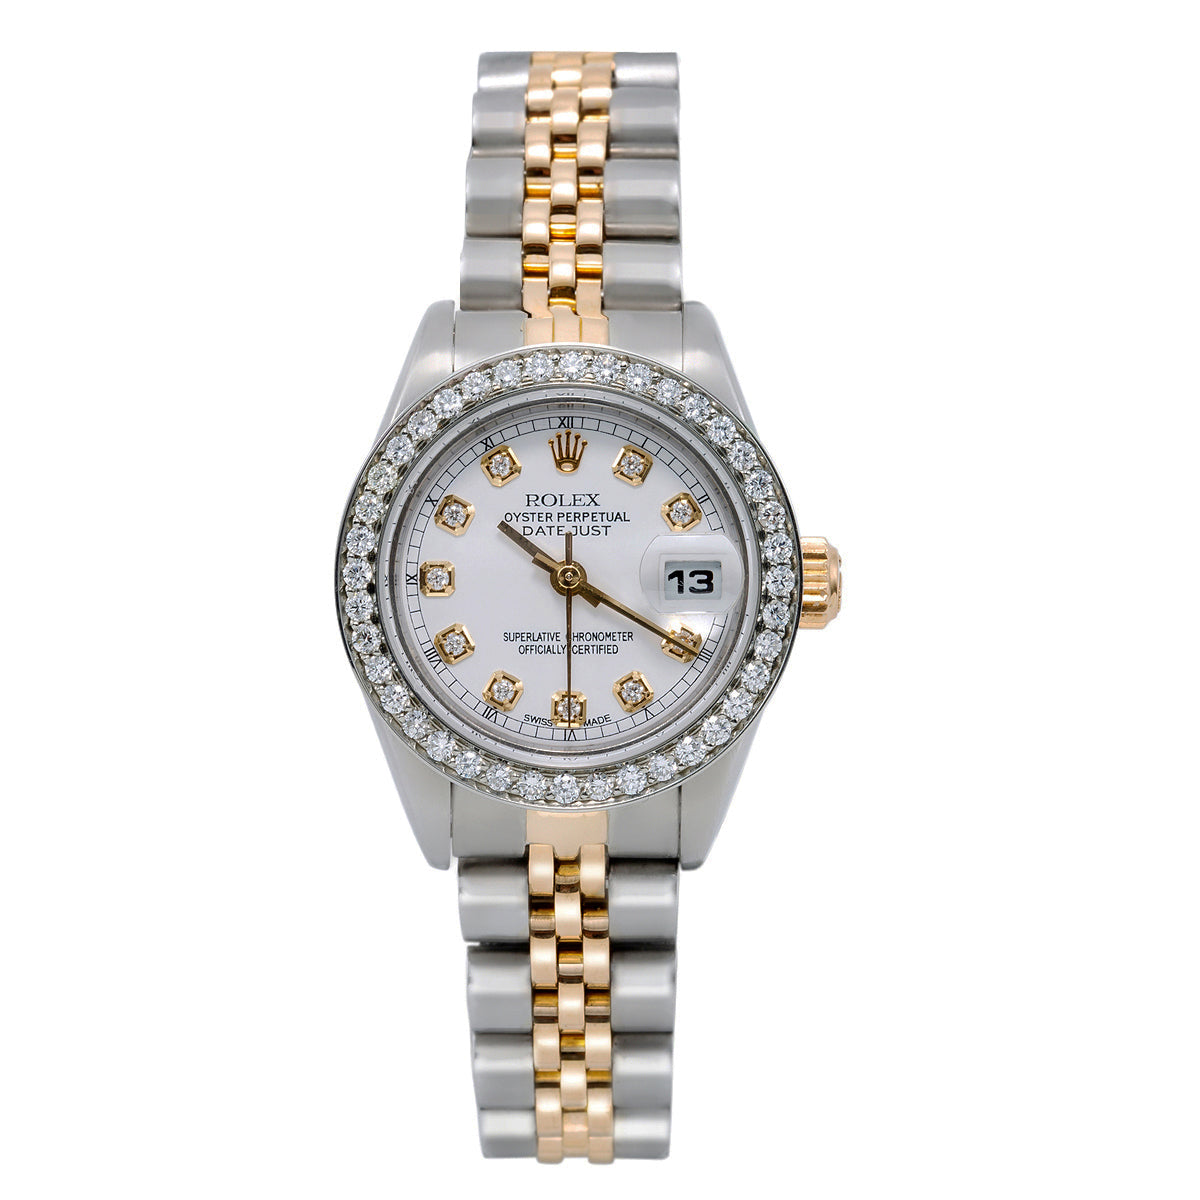 Two Tone Rolex Datejust 26mm White Dial With 1.2CT Diamond Bezel